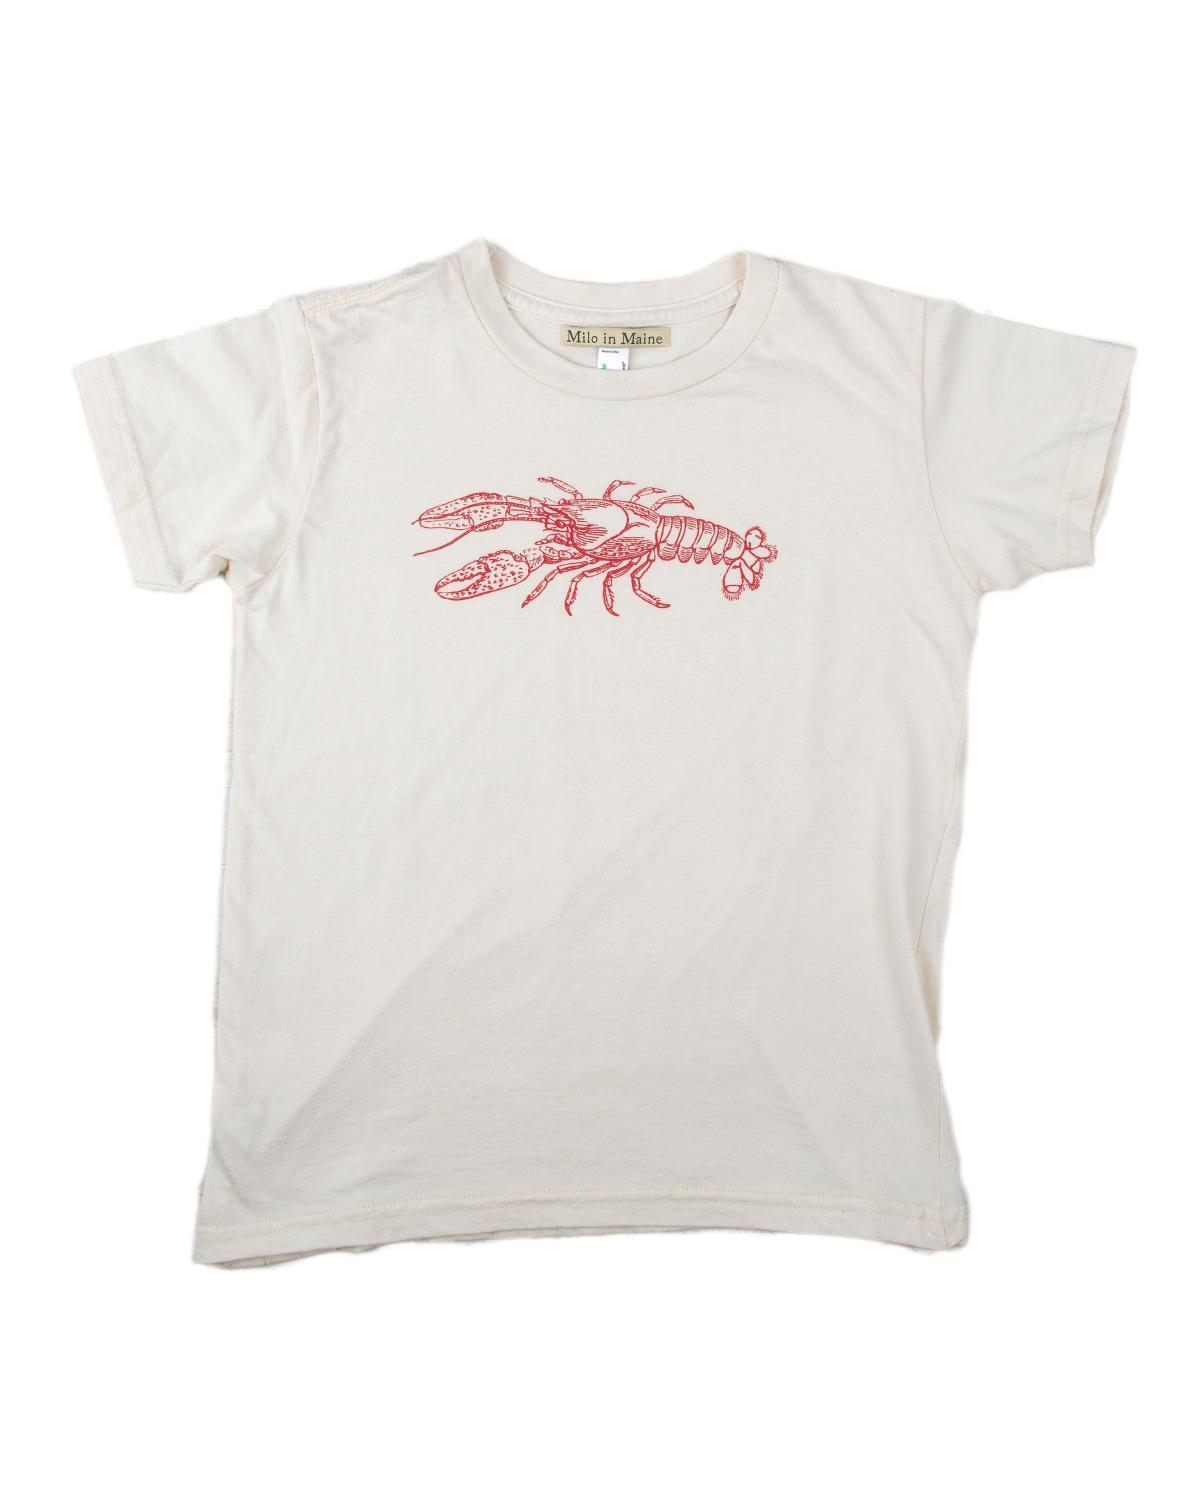 Little milo in maine baby boy 3-6 S/S Baby Lobster Tee in Natural + Red